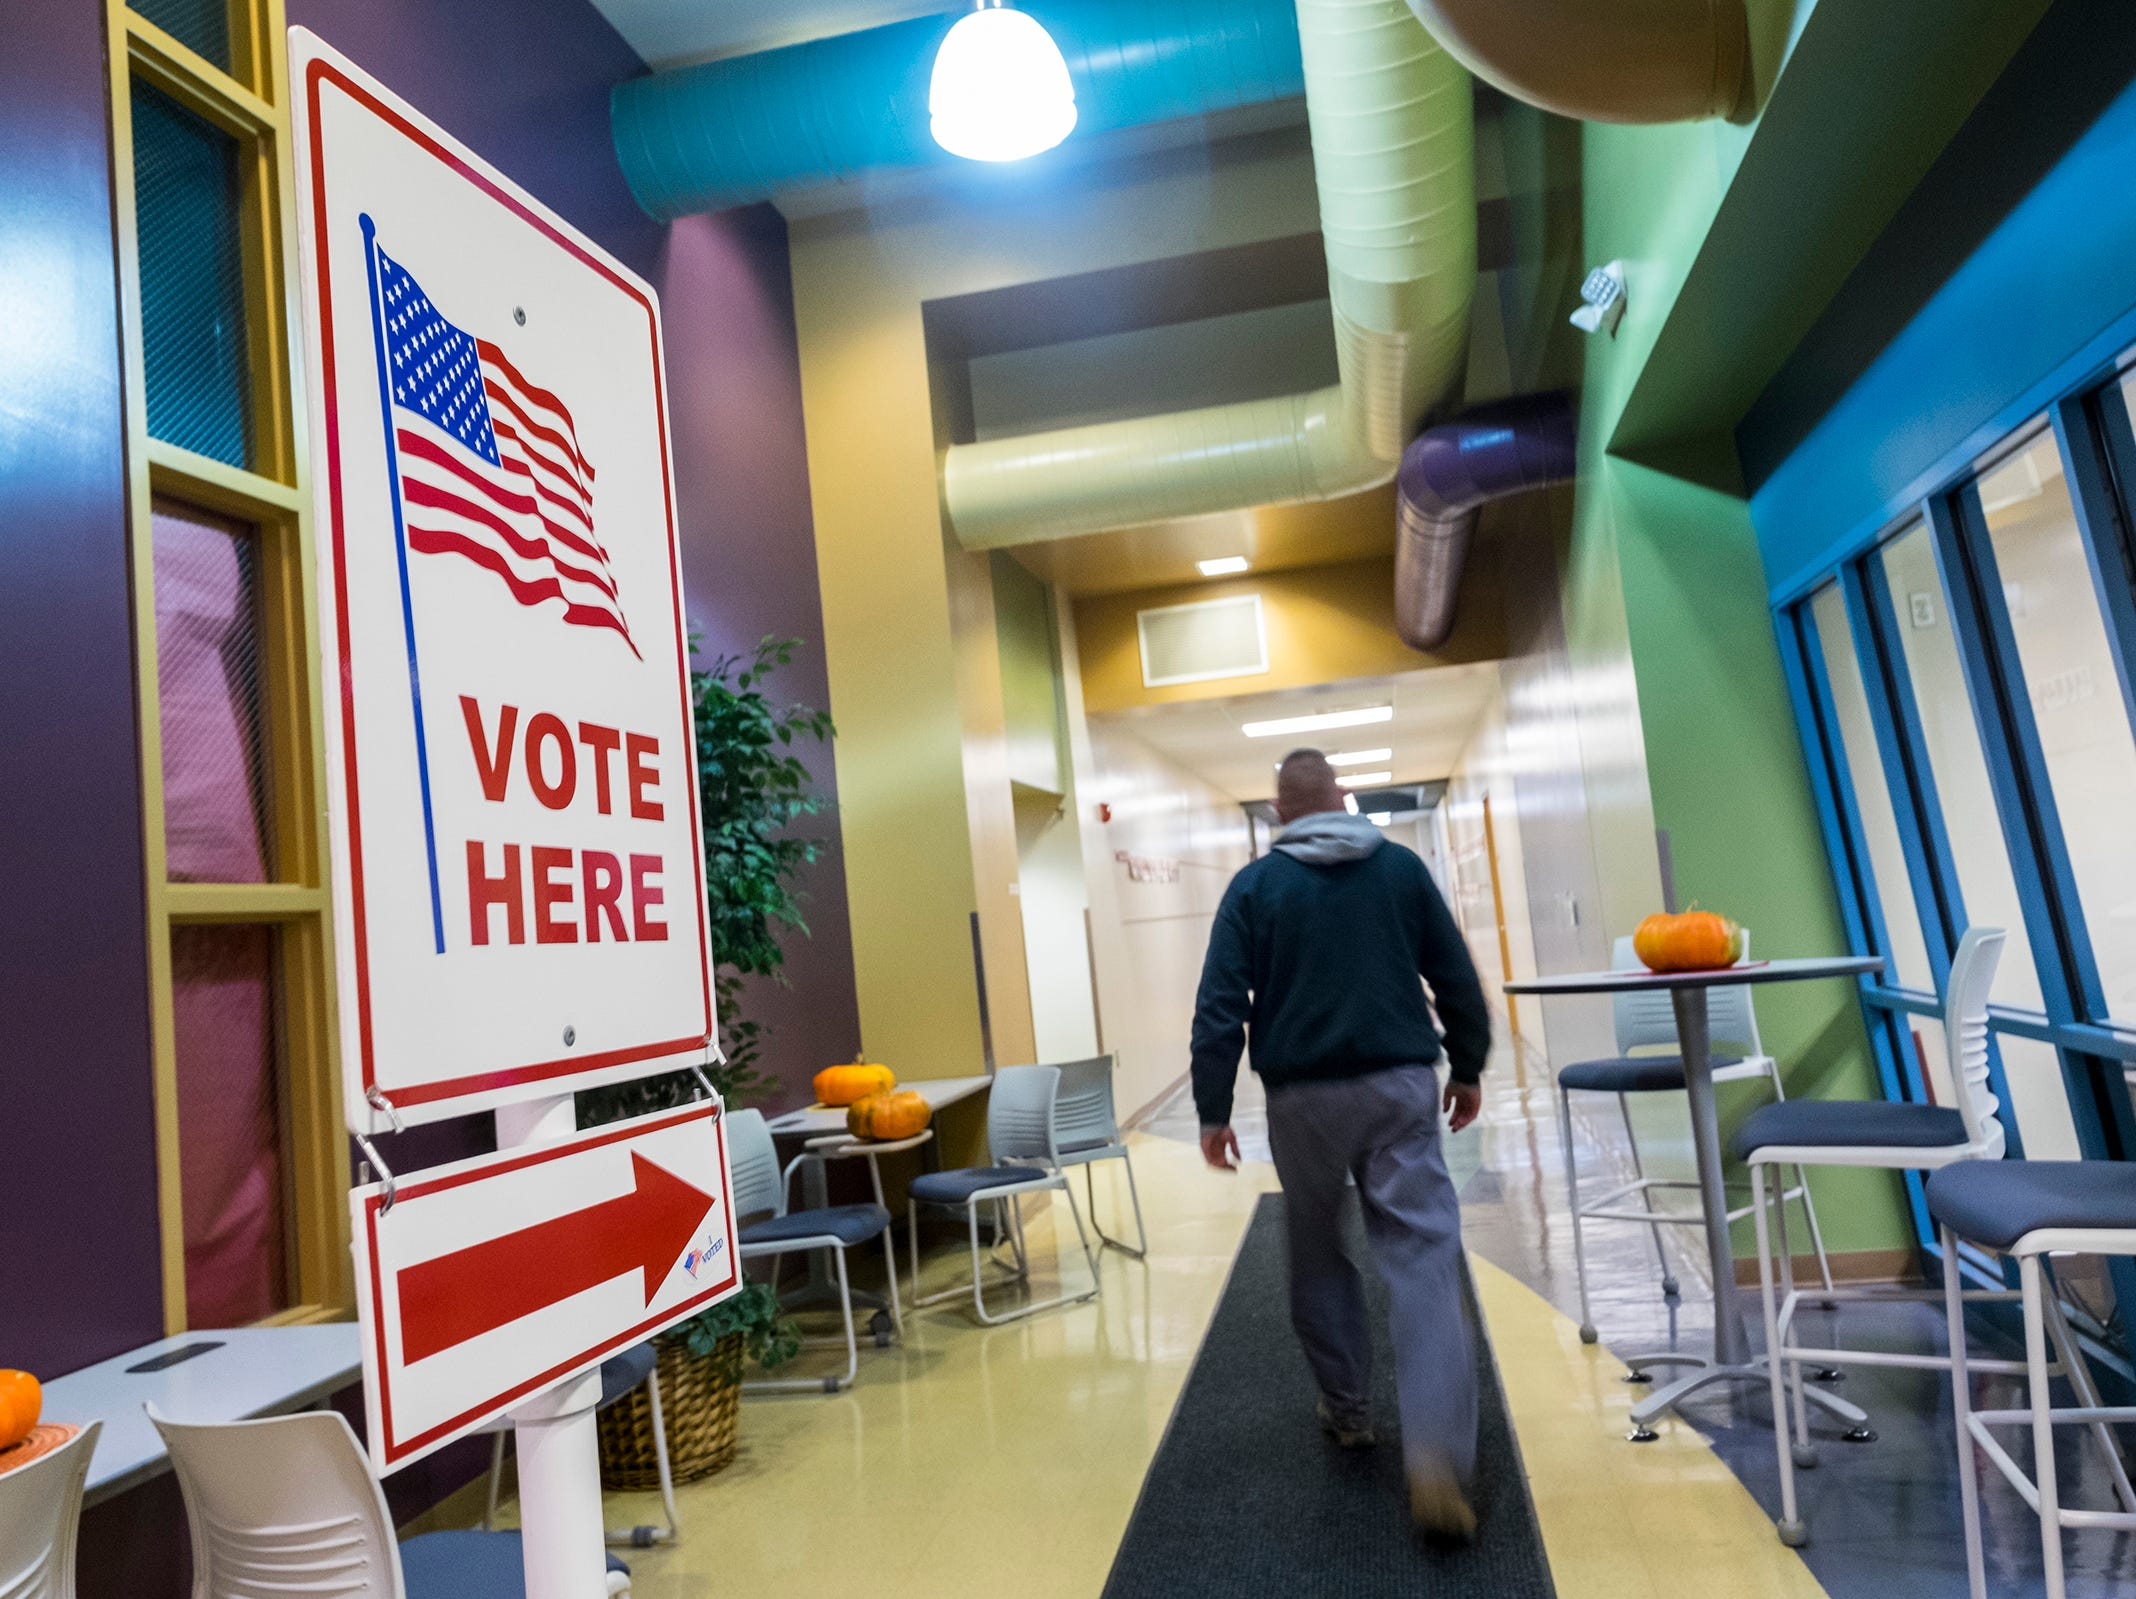 A Port Huron Township voter walks into the precinct 5 polling location Tuesday, Nov. 6, 2018 at the Virtual Learning Academy.